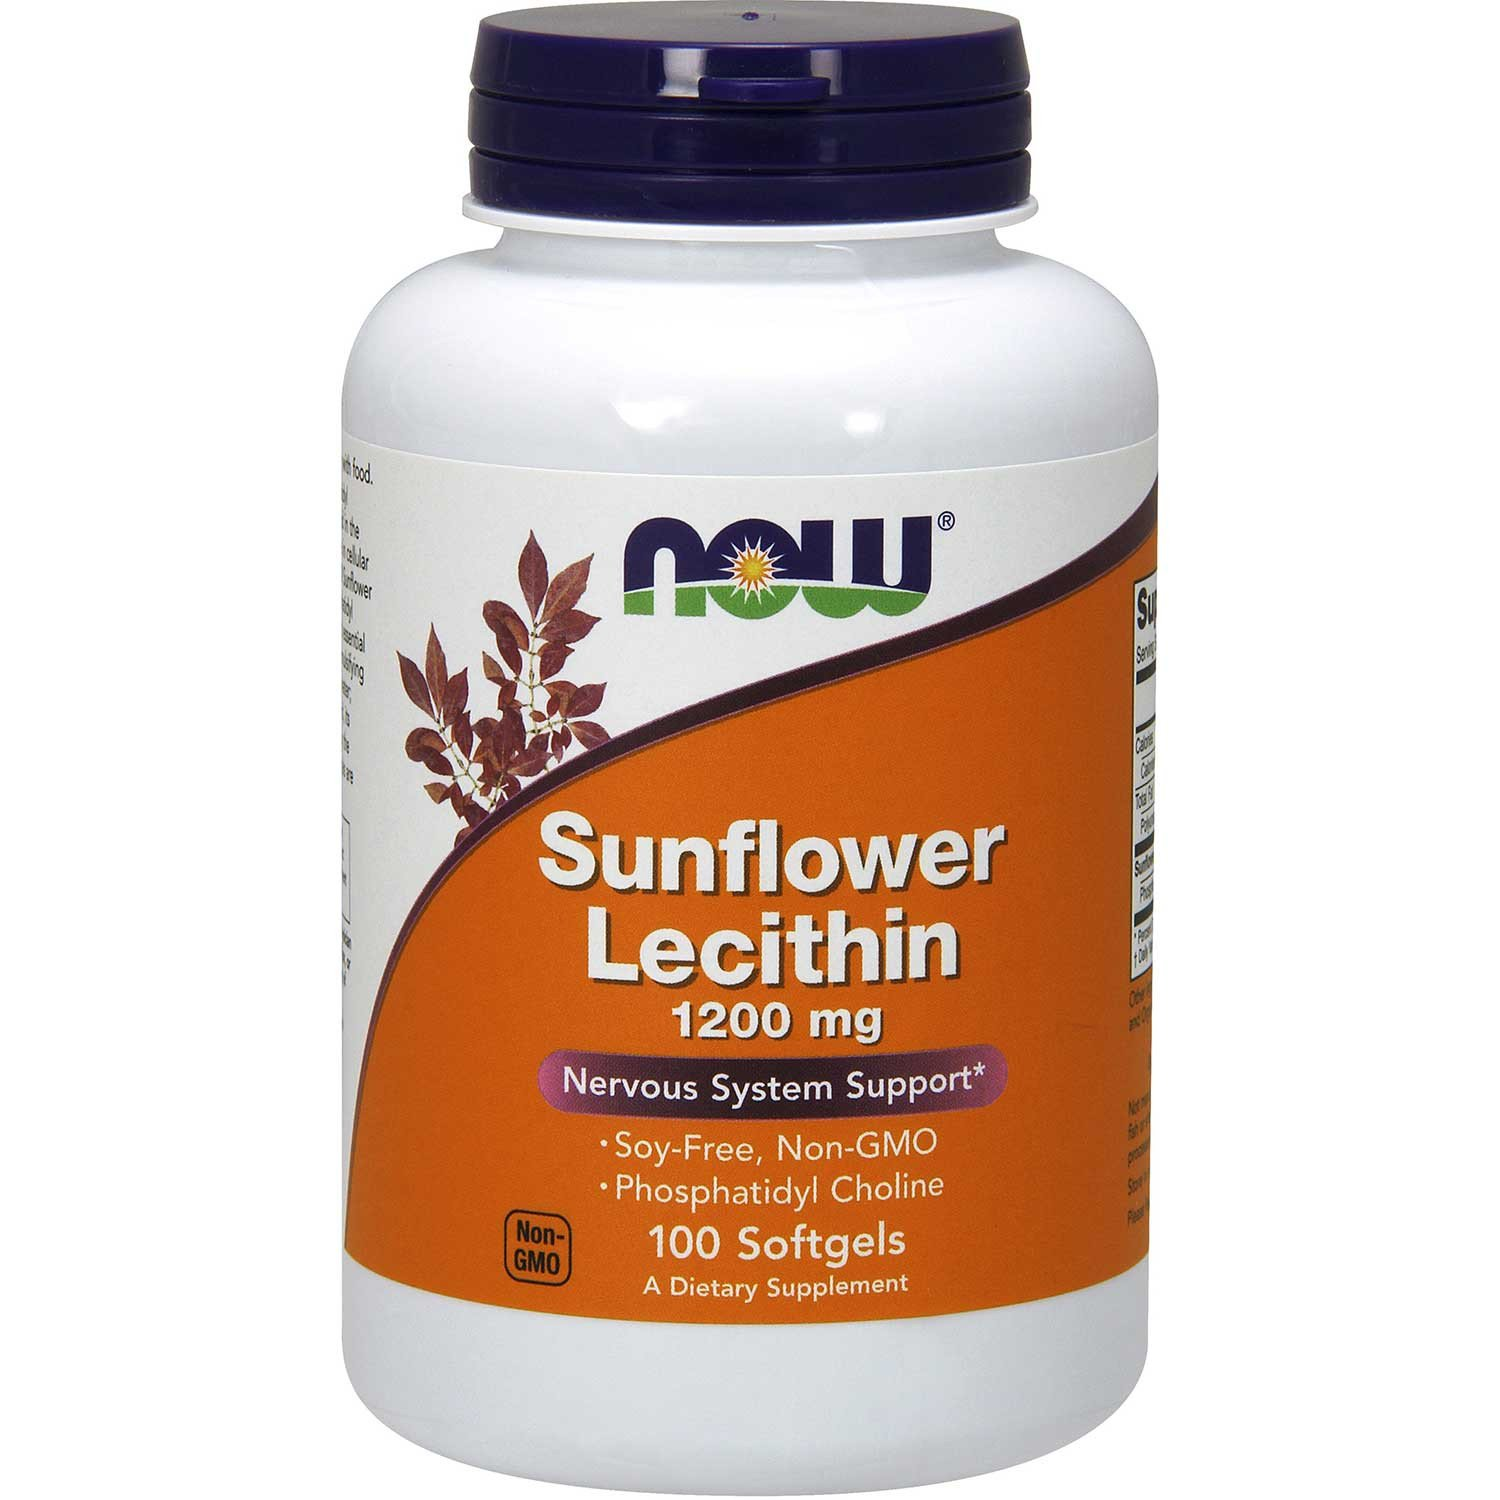 NOW Sunflower Lecithin 1200 mg (Non-GMO, Soy-Free), 100 sgls